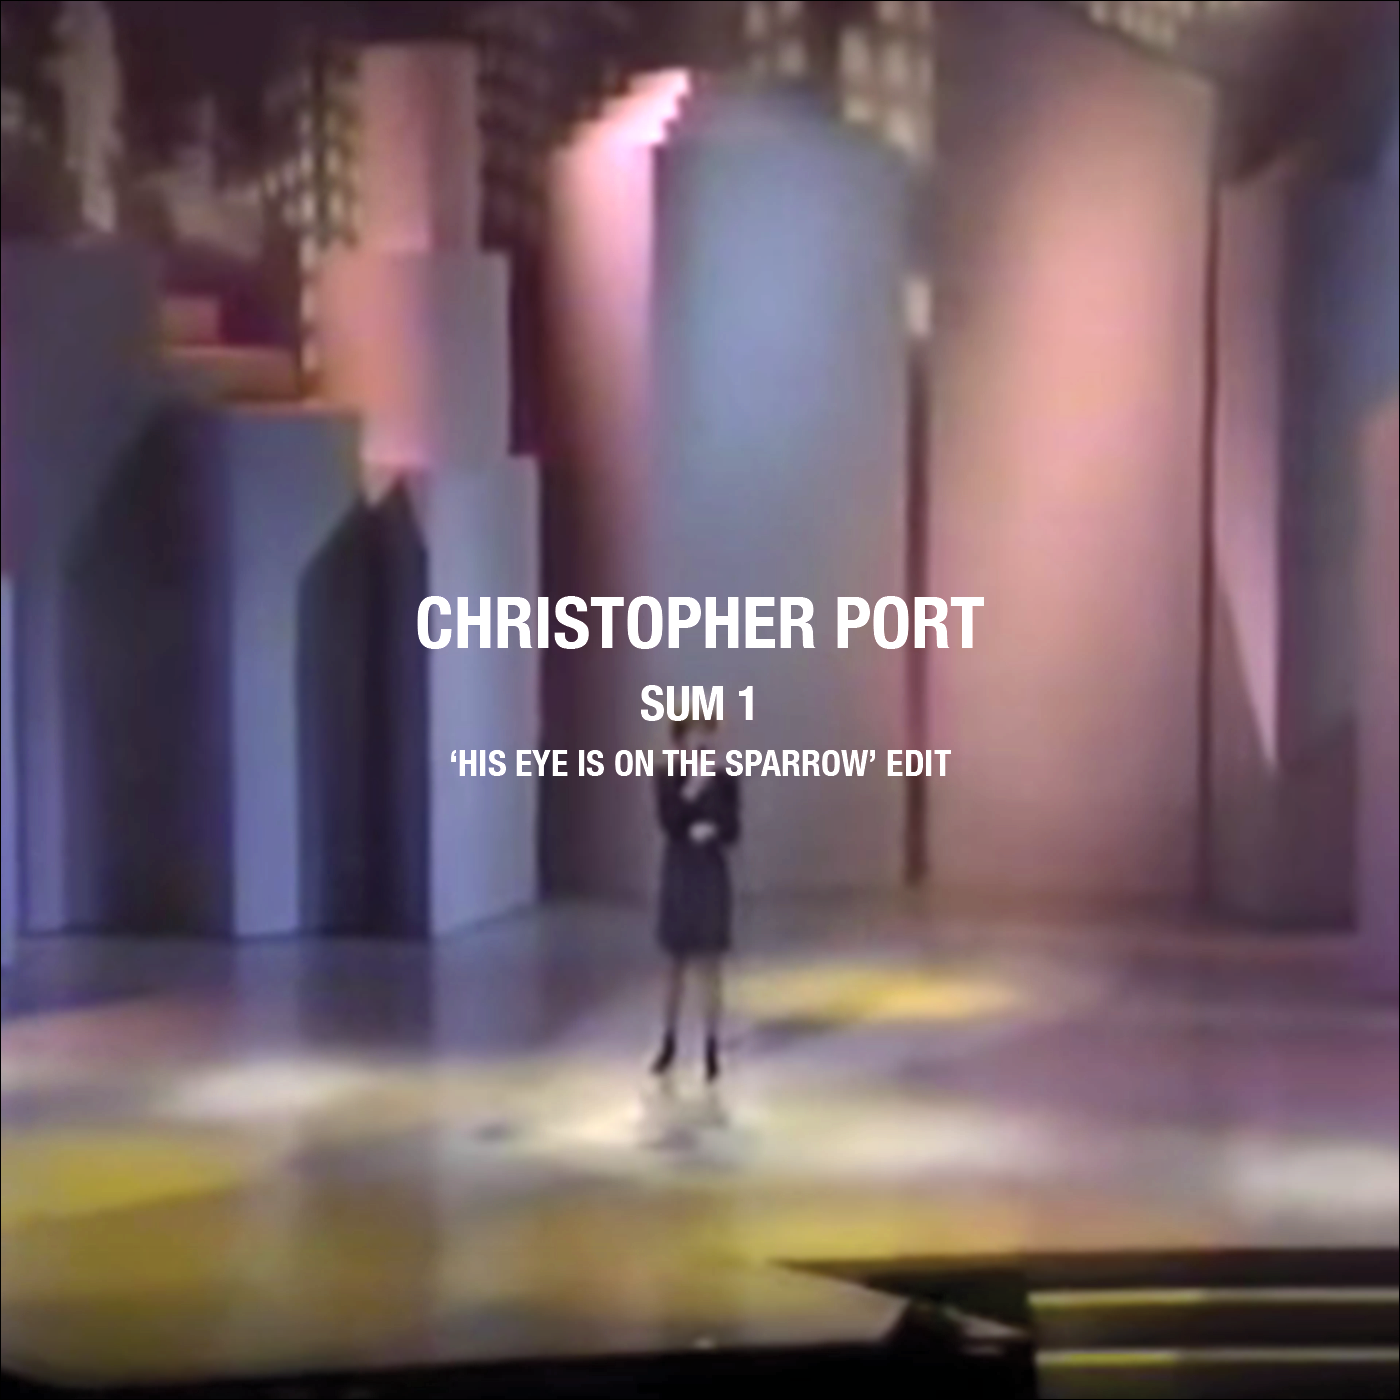 Christopher Port - Sum 1 ('His Eye Is On The Sparrow' Edit)